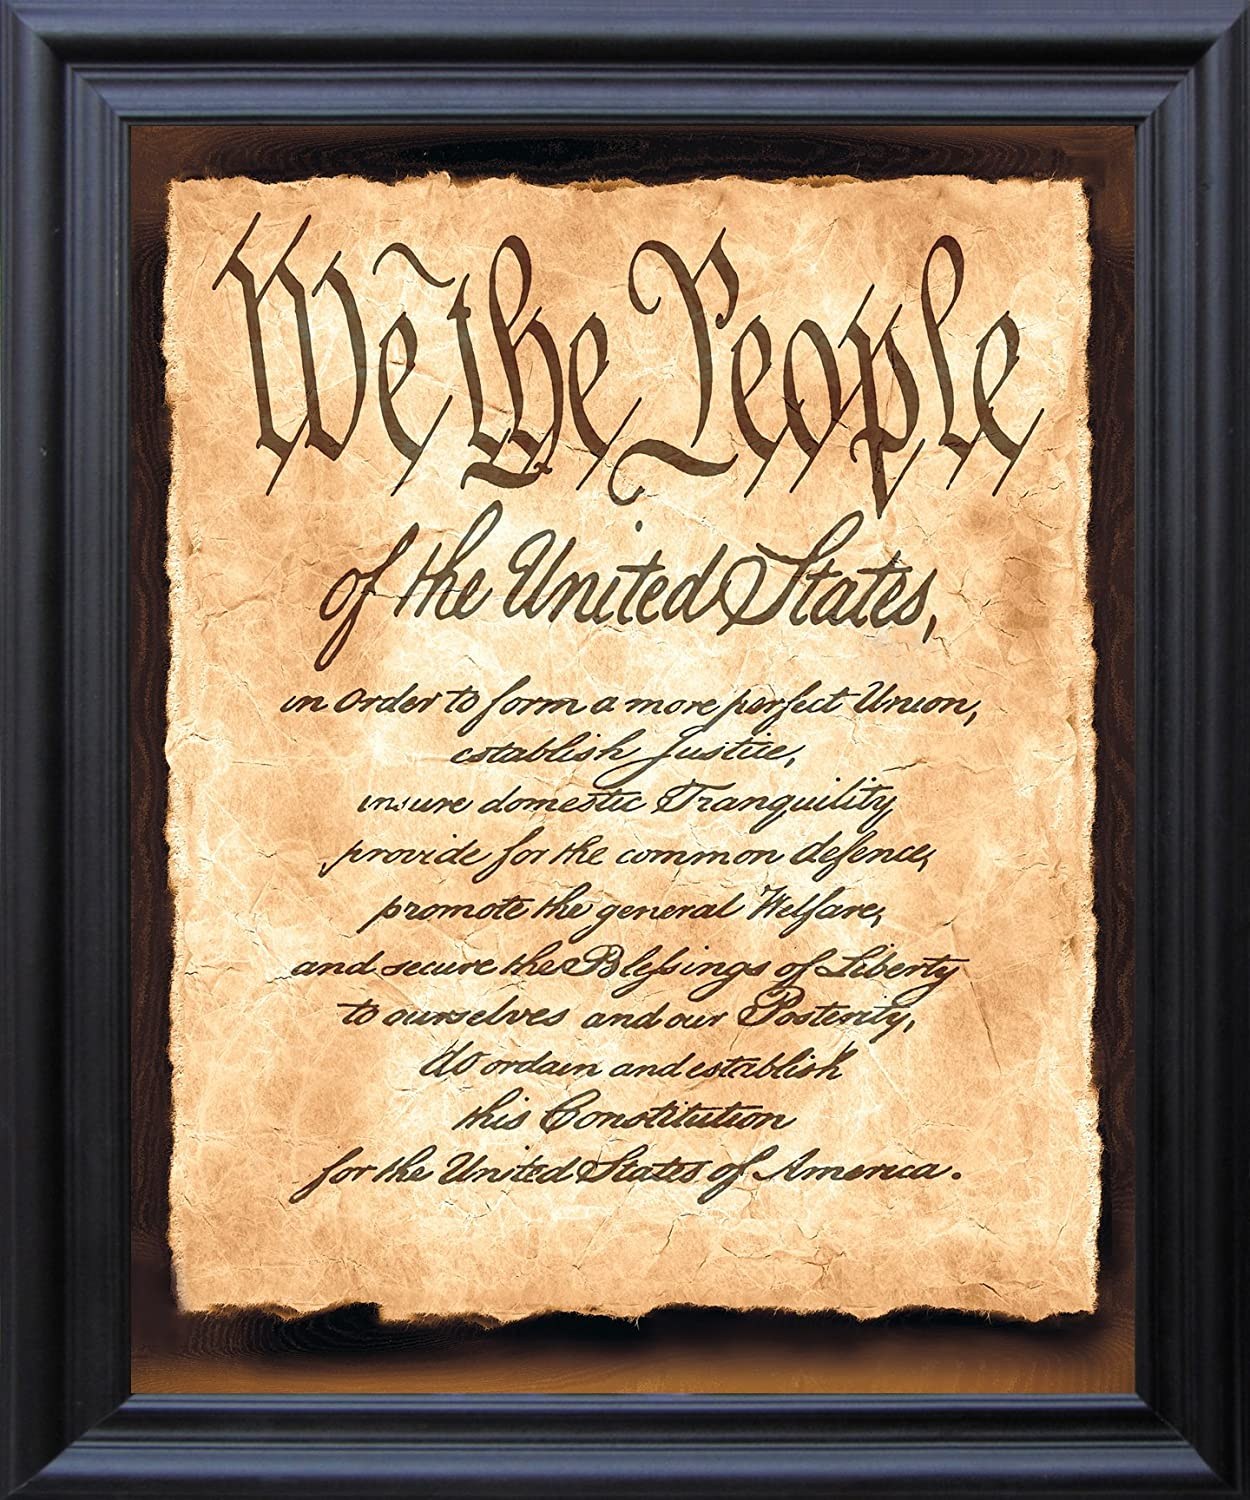 Amazon.com: Impact Posters Gallery Constitution of the United States ...